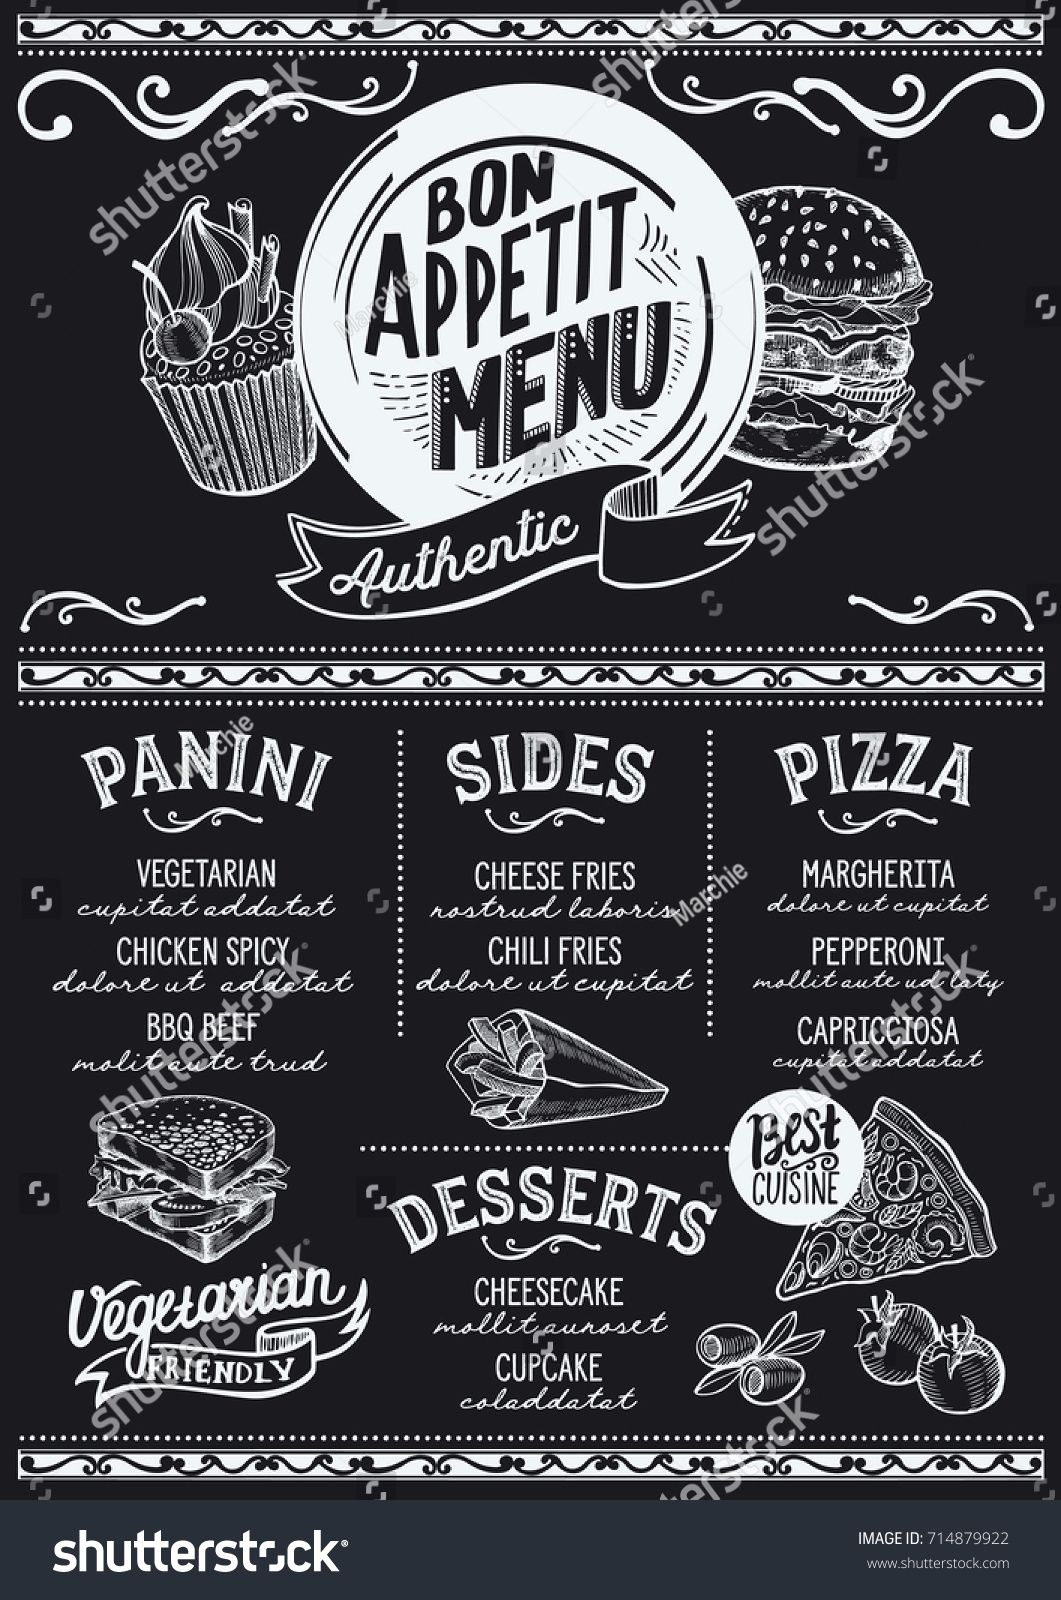 Food Menu For Restaurant And Cafe Design Template With Hand Drawn